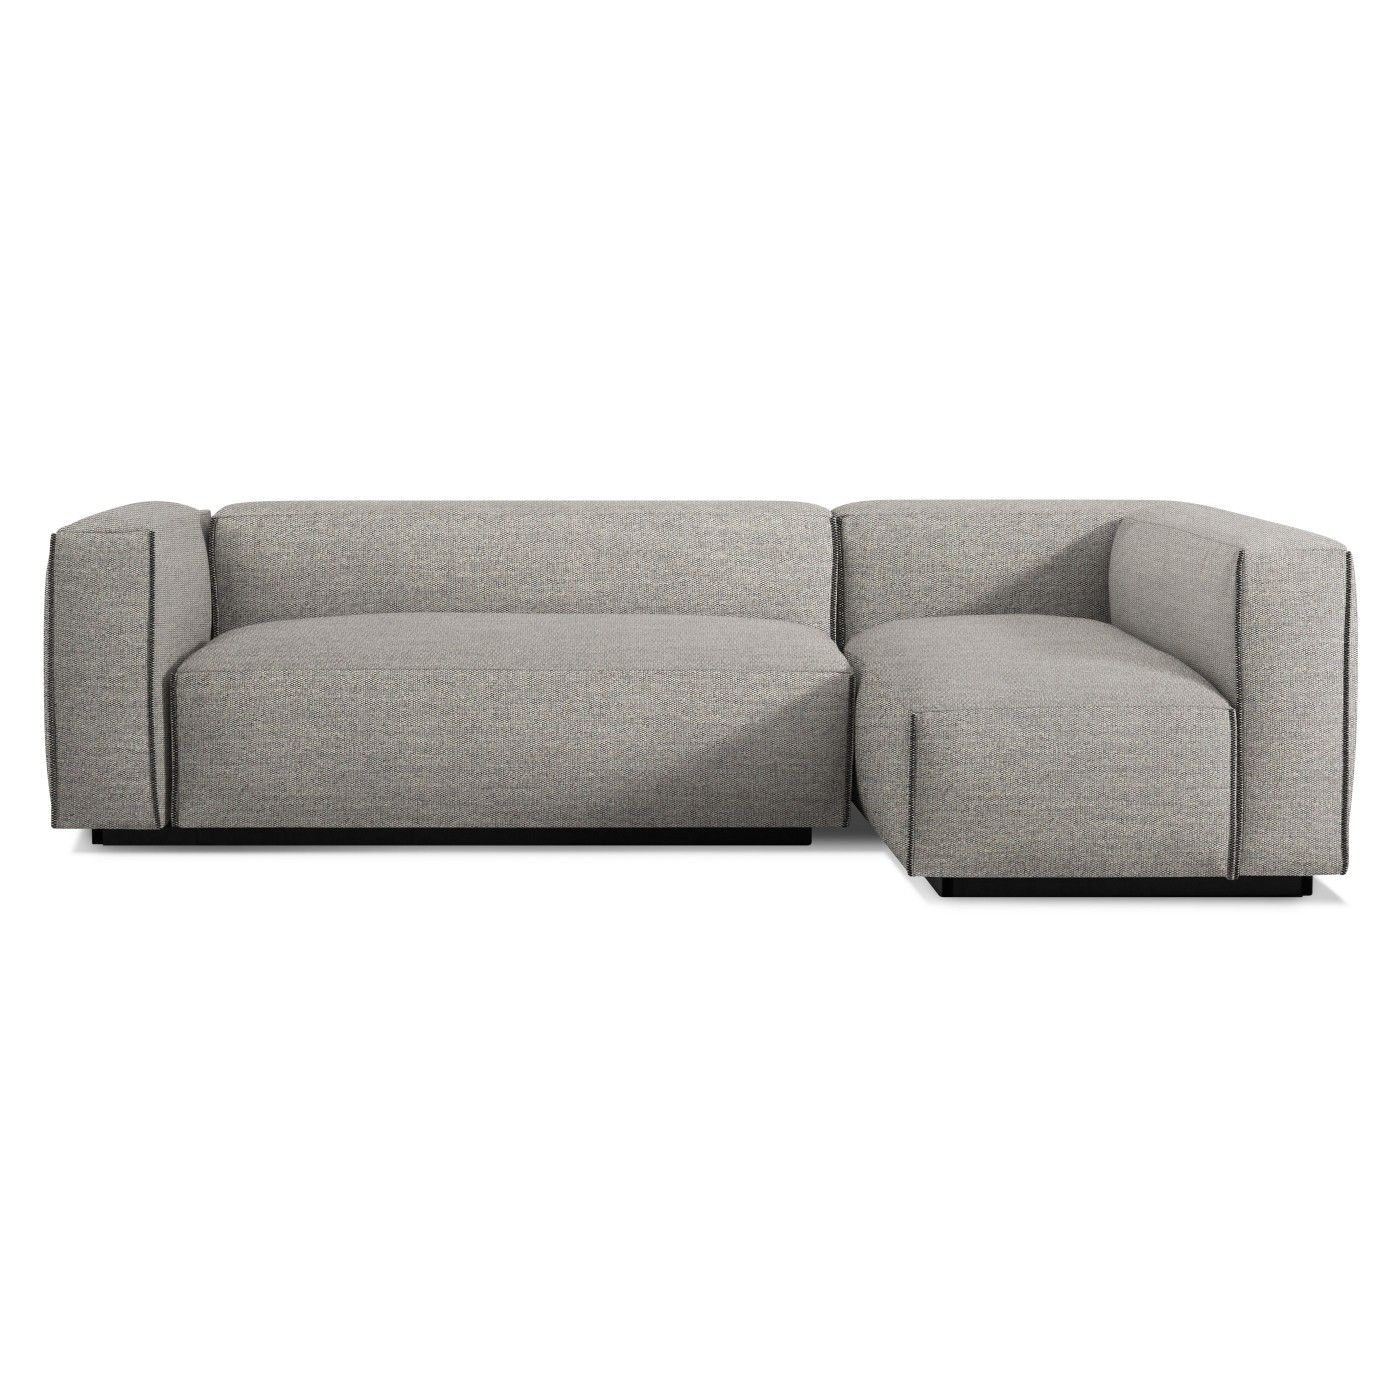 Cleon Small Sectional Sofa With Images Modern Sofa Sectional Small Sectional Sofa Modular Sectional Sofa